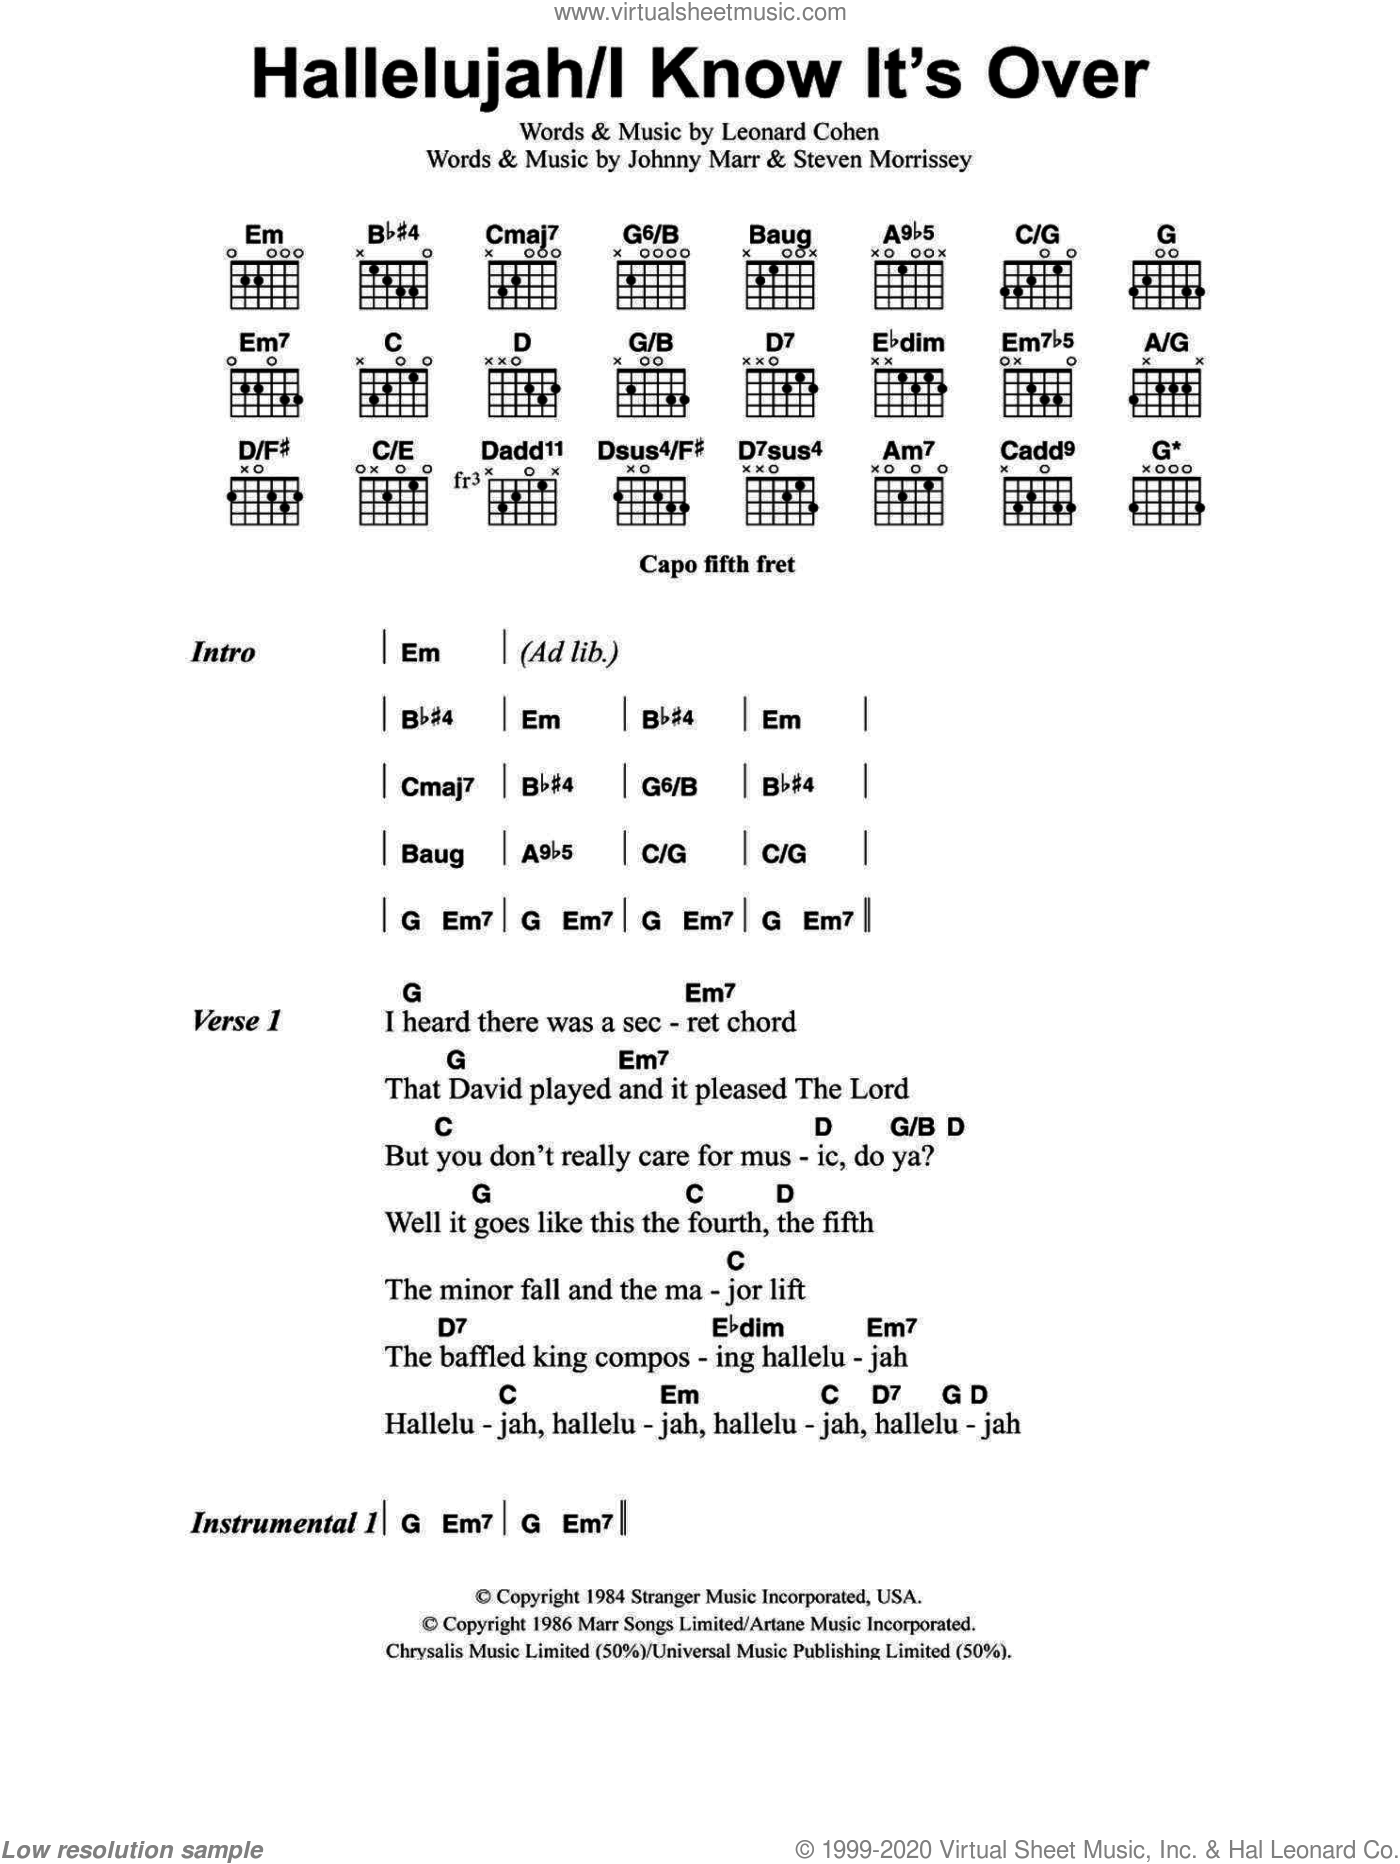 Hallelujah / I Know It's Over sheet music for guitar (chords) by Jeff Buckley, Johnny Marr, Leonard Cohen and Steven Morrissey, intermediate